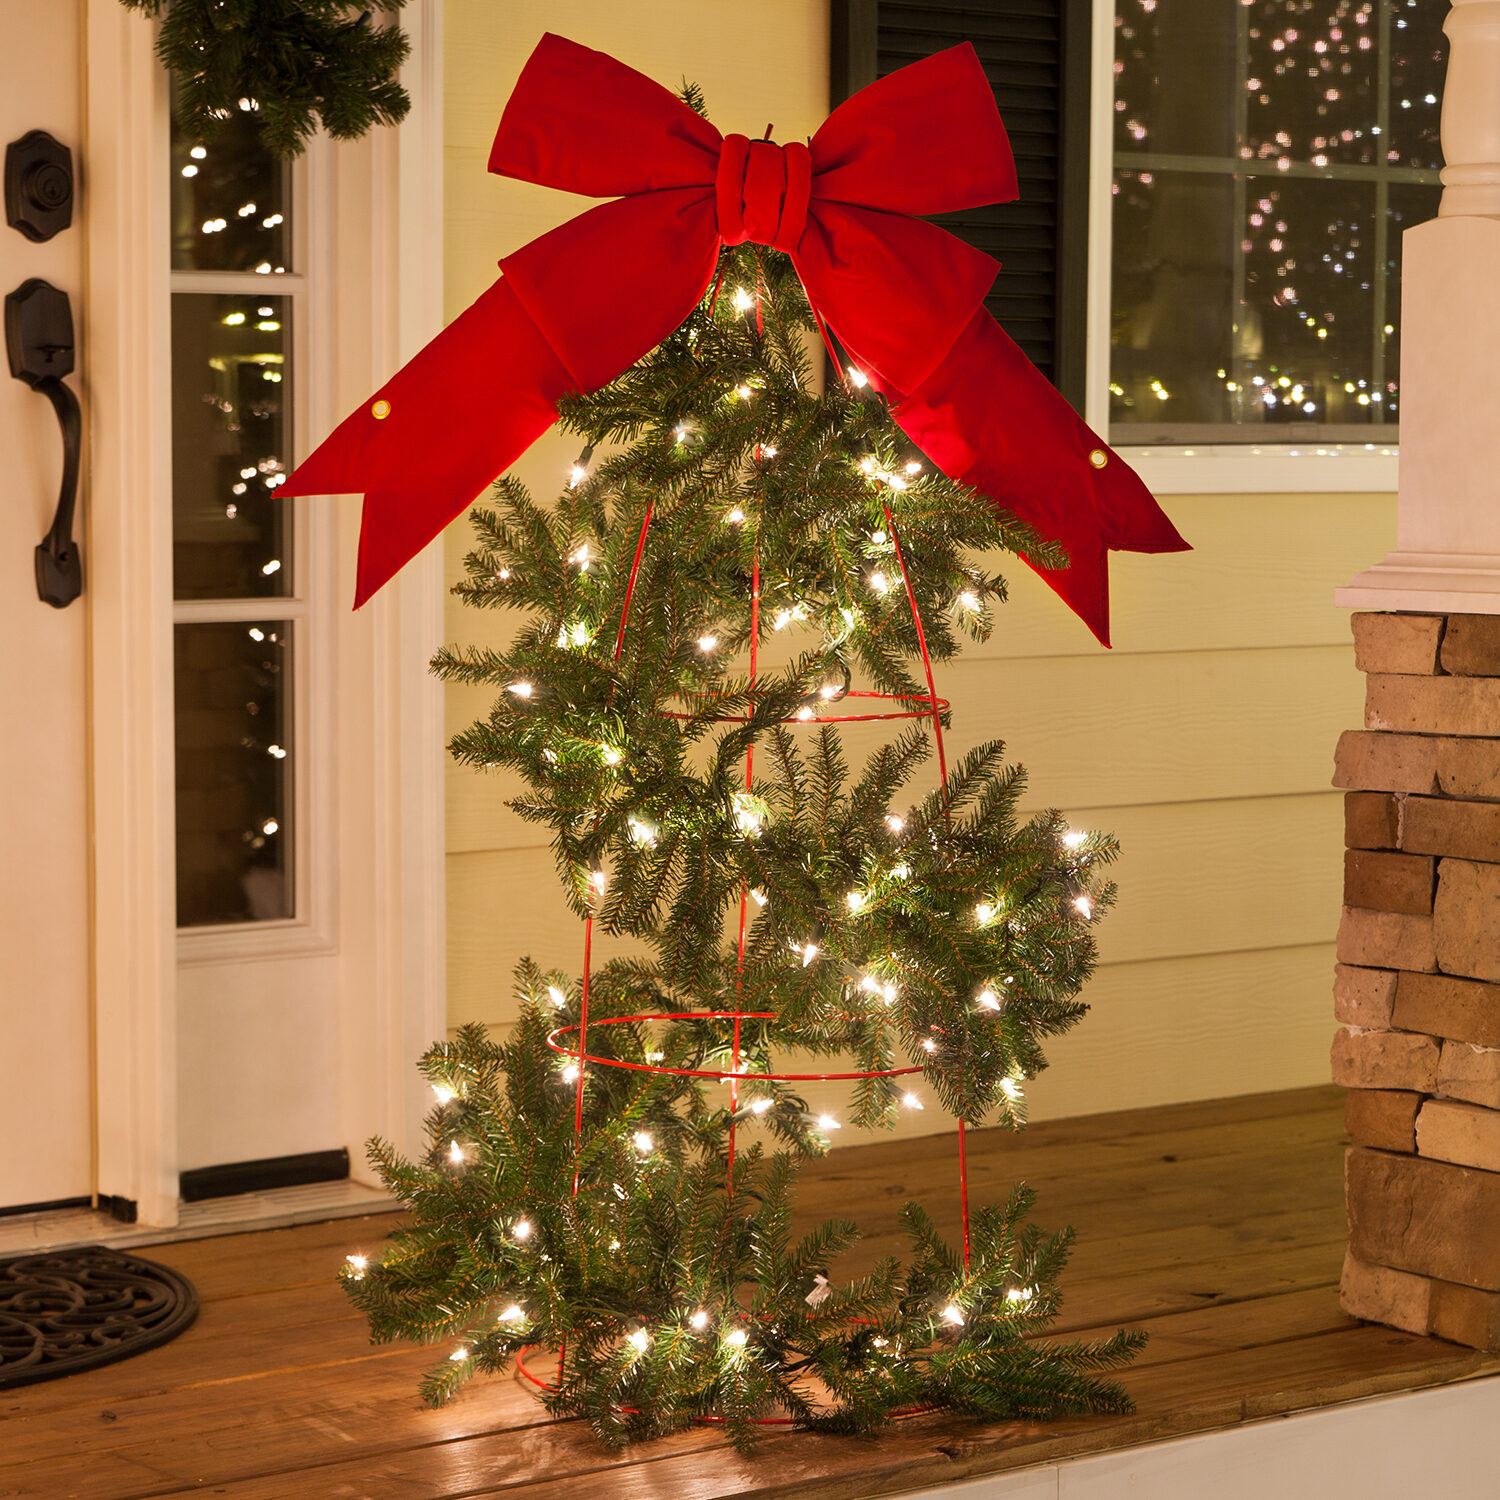 DIY tomato cage Christmas tree - wrap tomato cages with lighted garland then top with a bow!